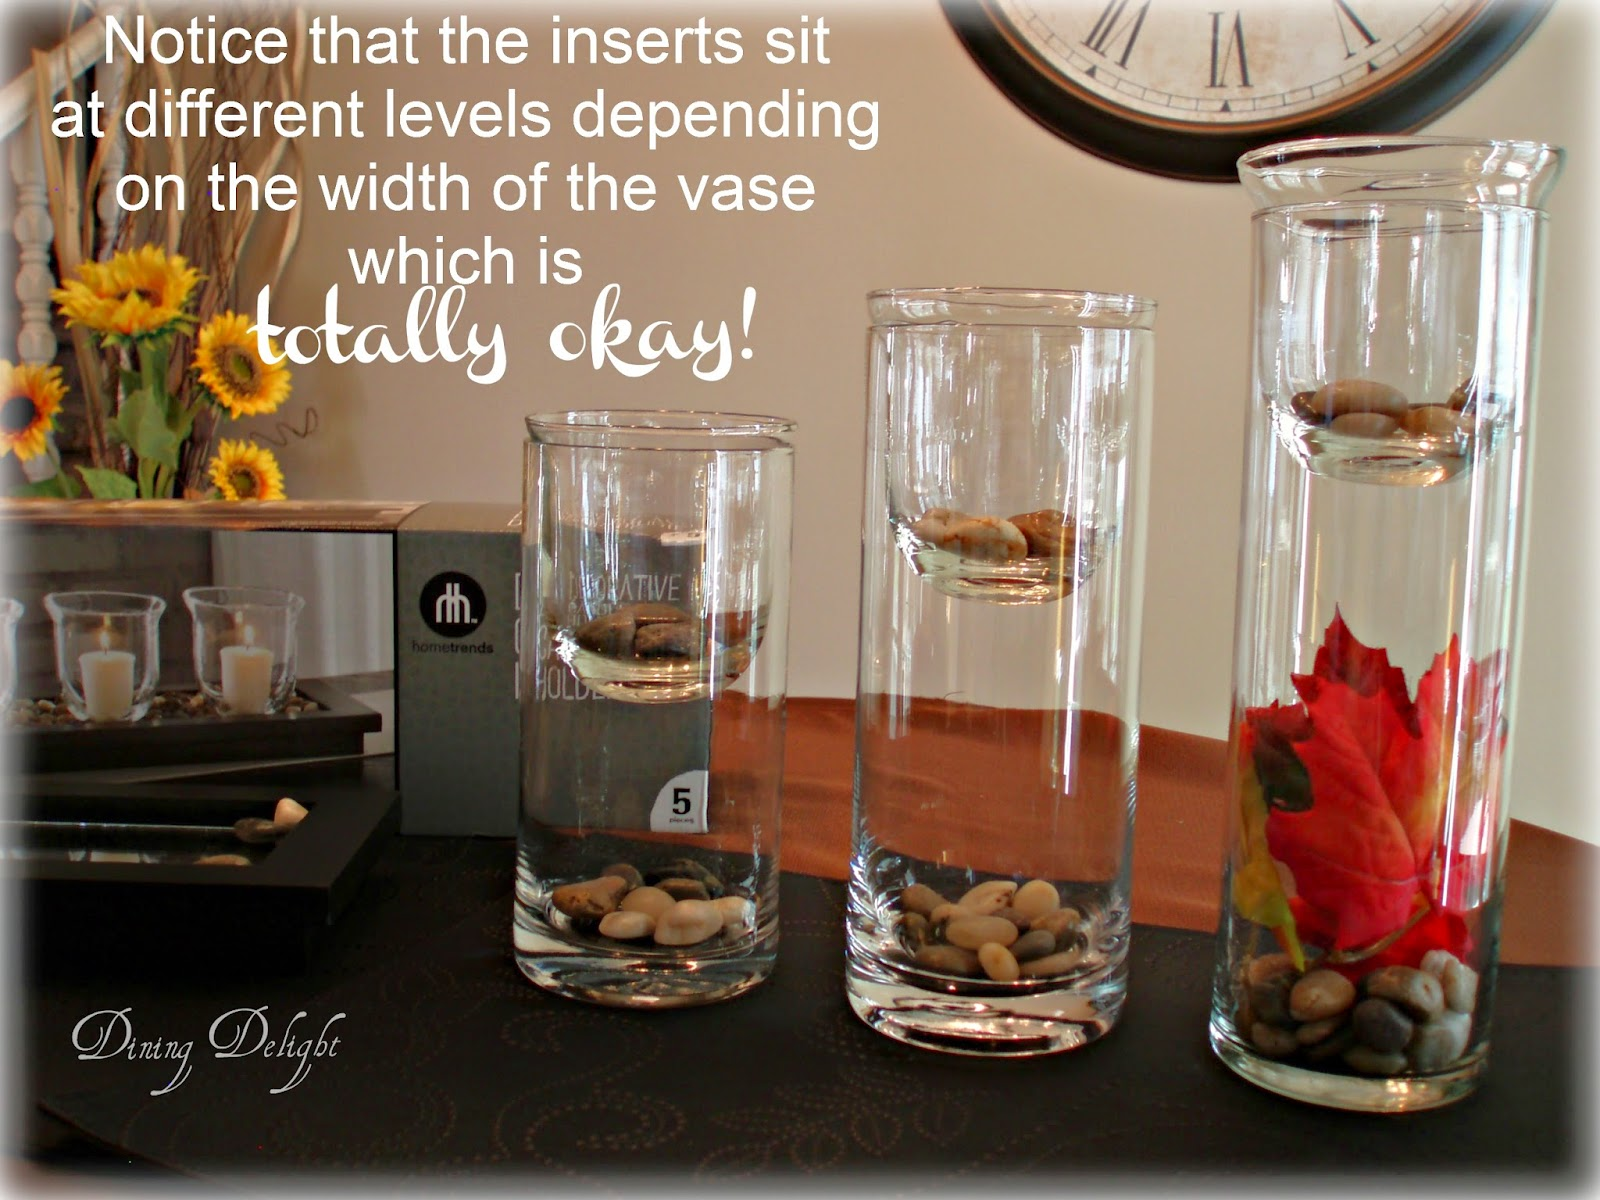 Dining delight cylinder vases with inserts get the look so if you are wanting to create some dramatic yet easy tabletop dcor for the upcoming holiday season and beyond n dont walk to your nearest walmart reviewsmspy